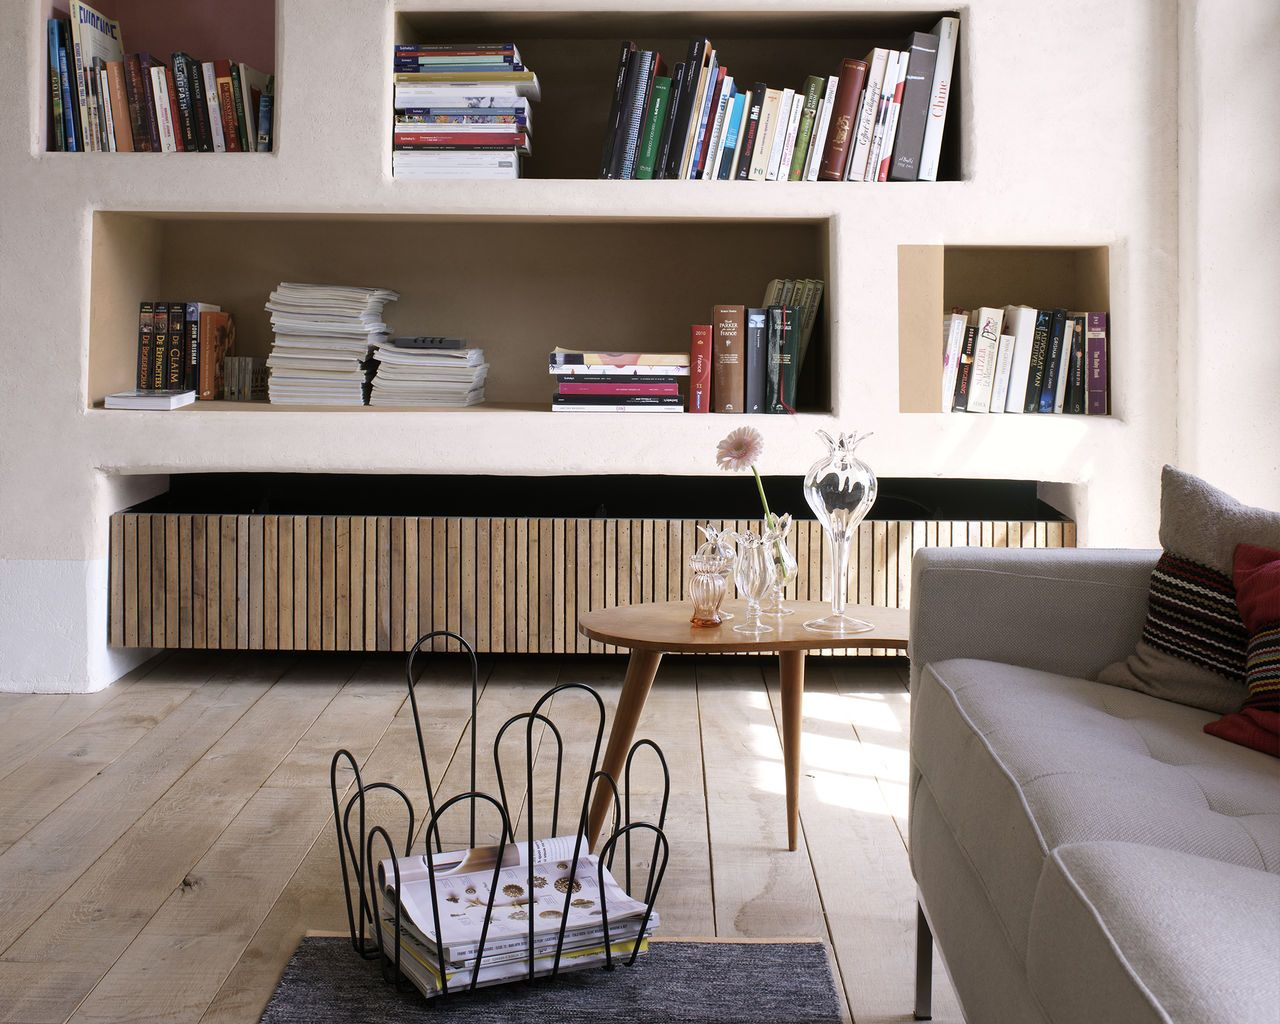 deco etagere etagere niche dulux valentine salon living room pinterest. Black Bedroom Furniture Sets. Home Design Ideas